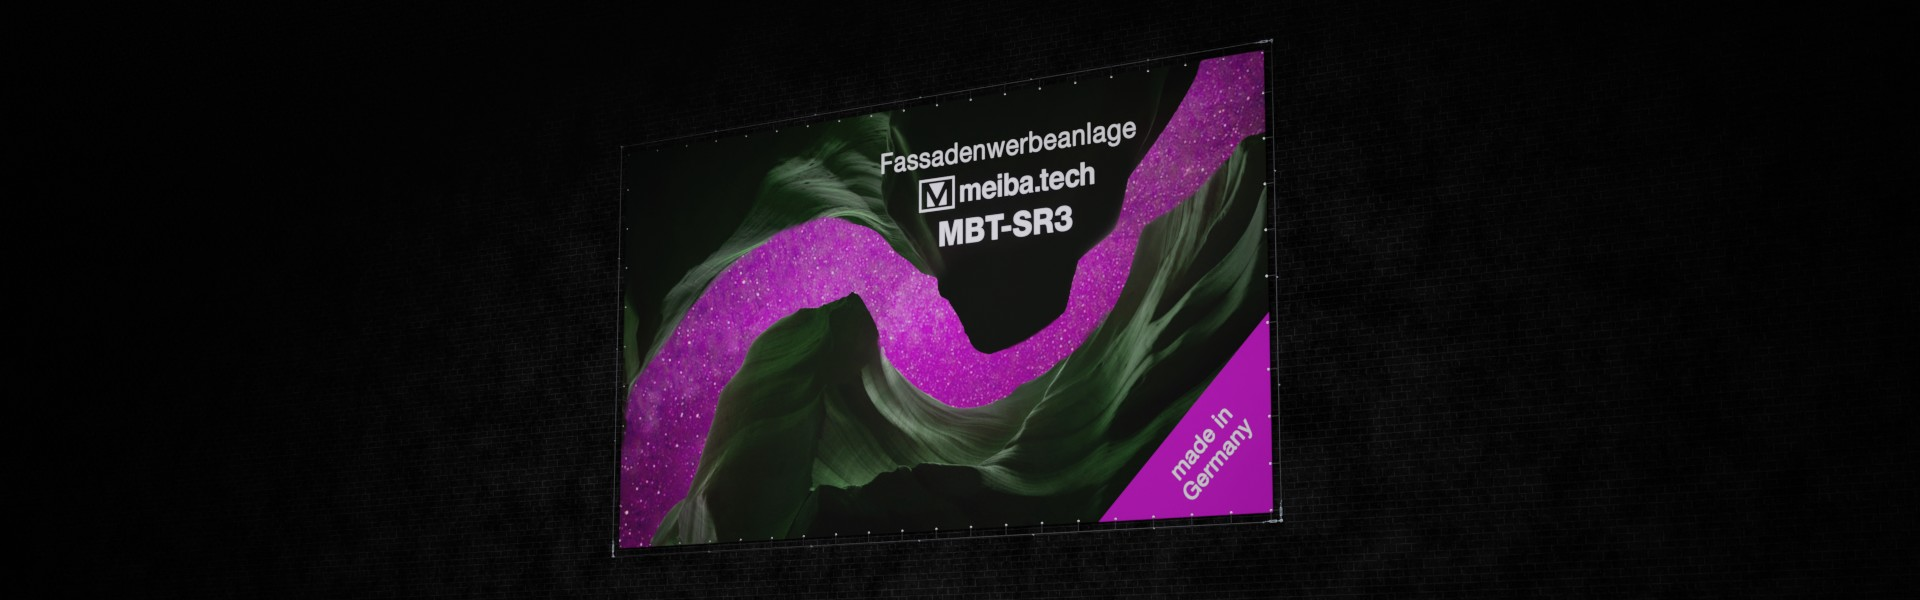 MBT-SR3: Inexpensive façade advertising, right view